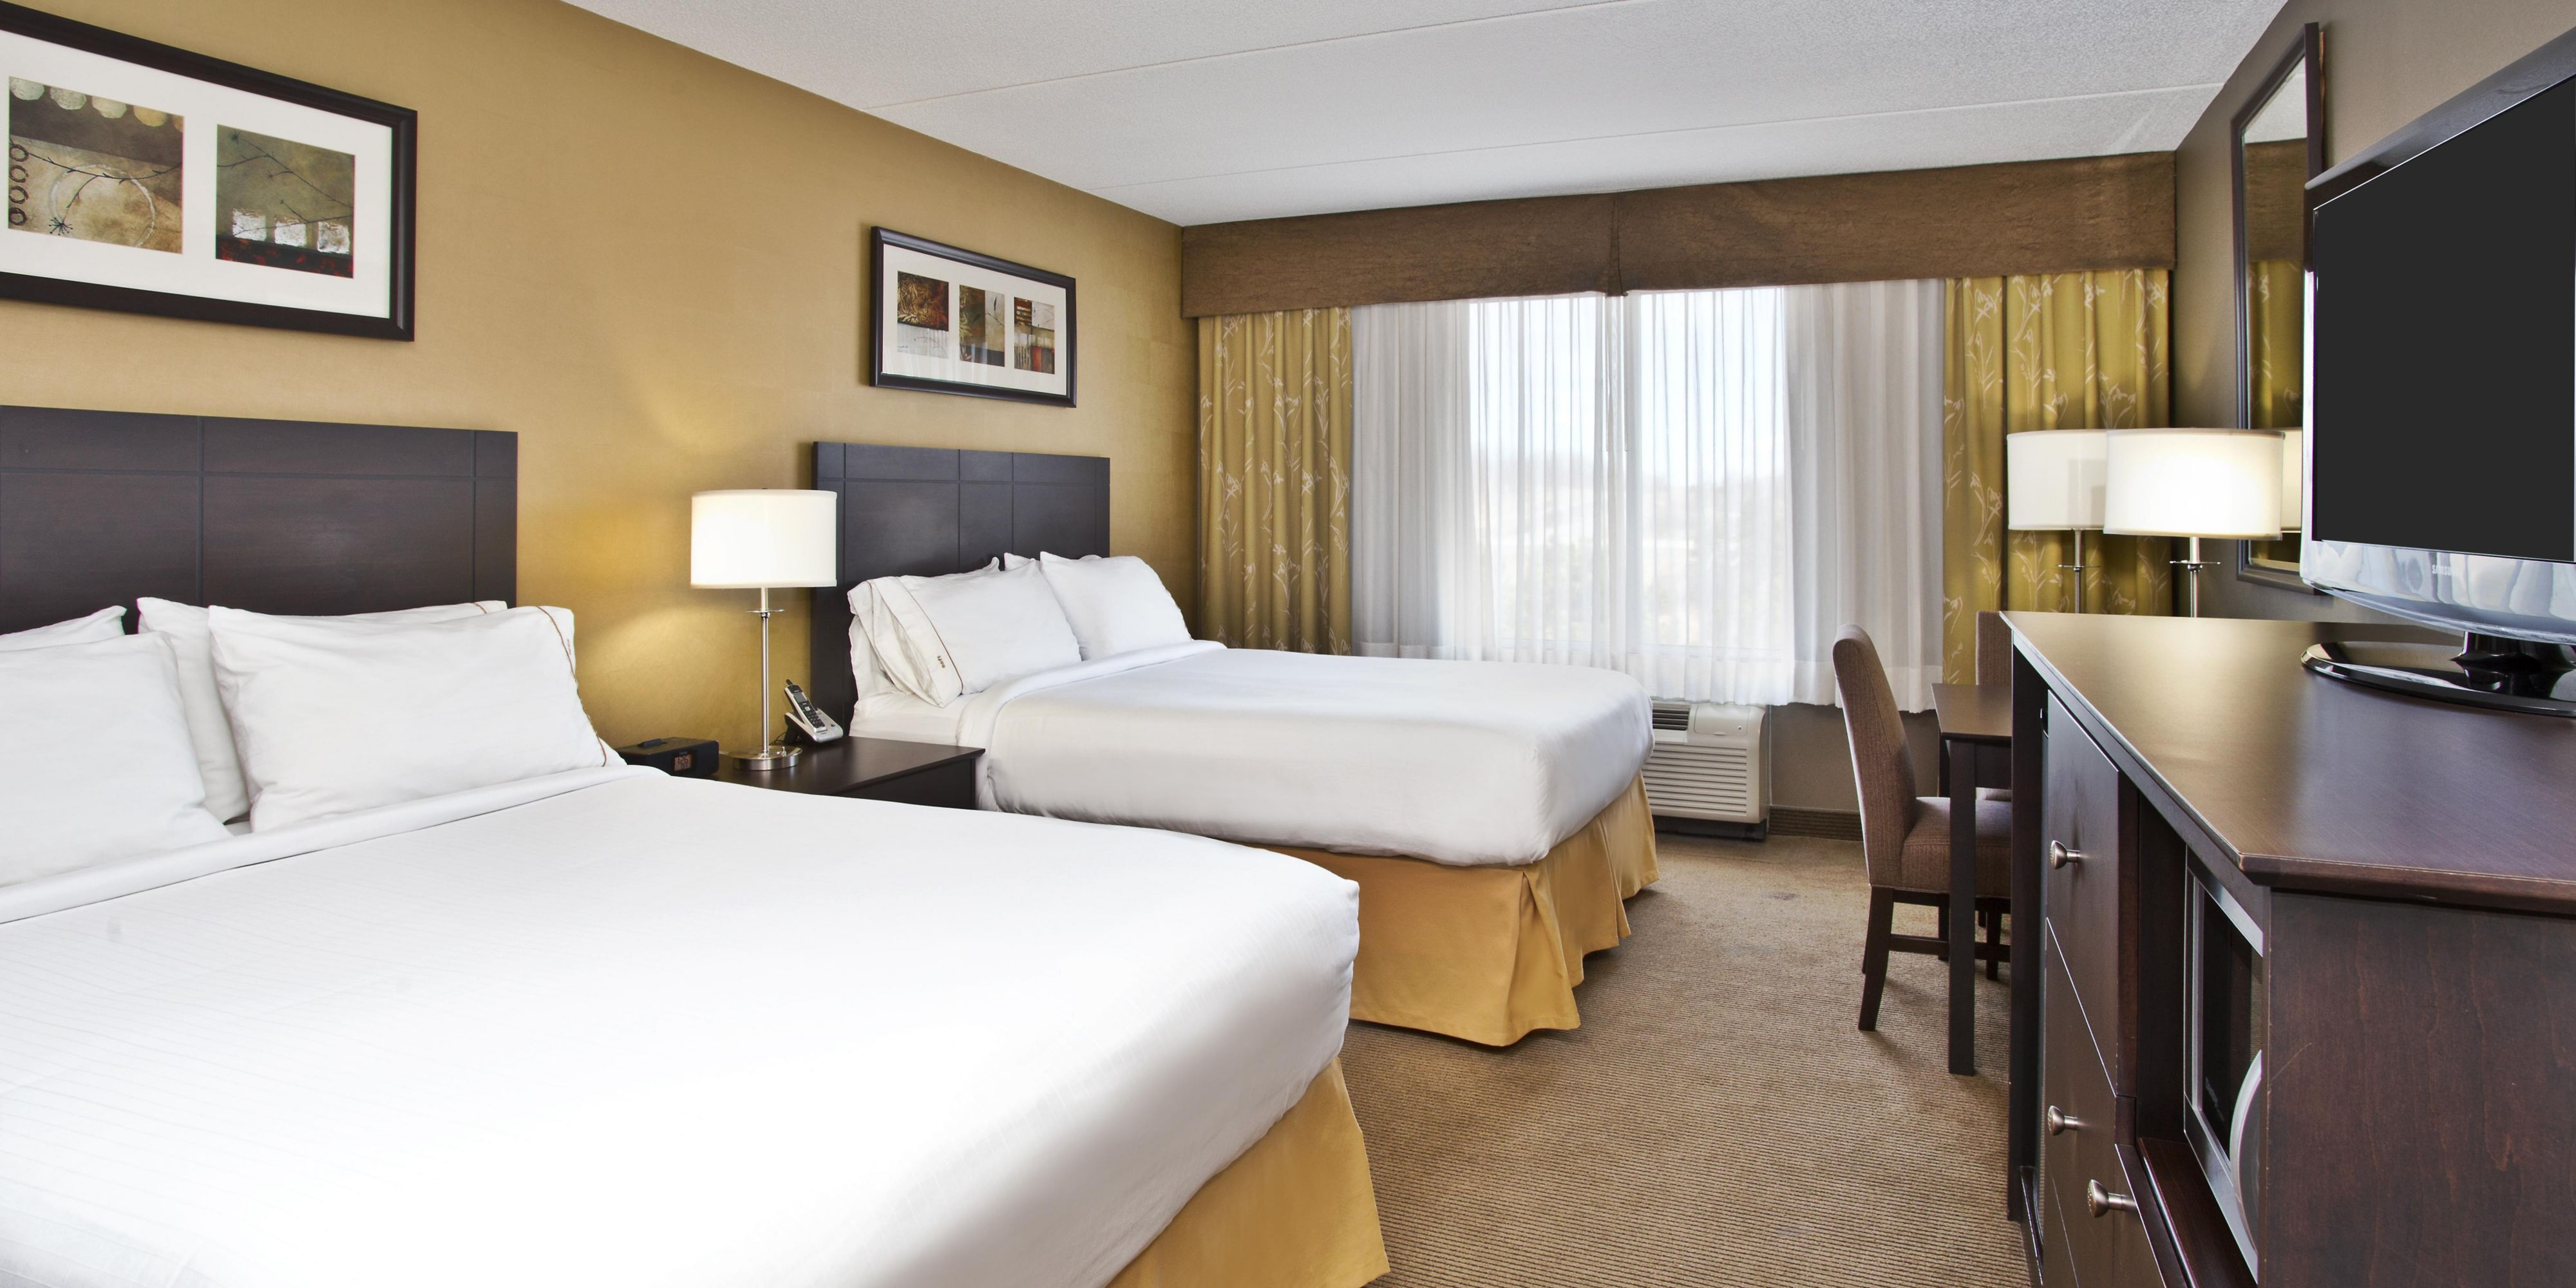 Holiday inn express and suites kingston 3951252809 2x1